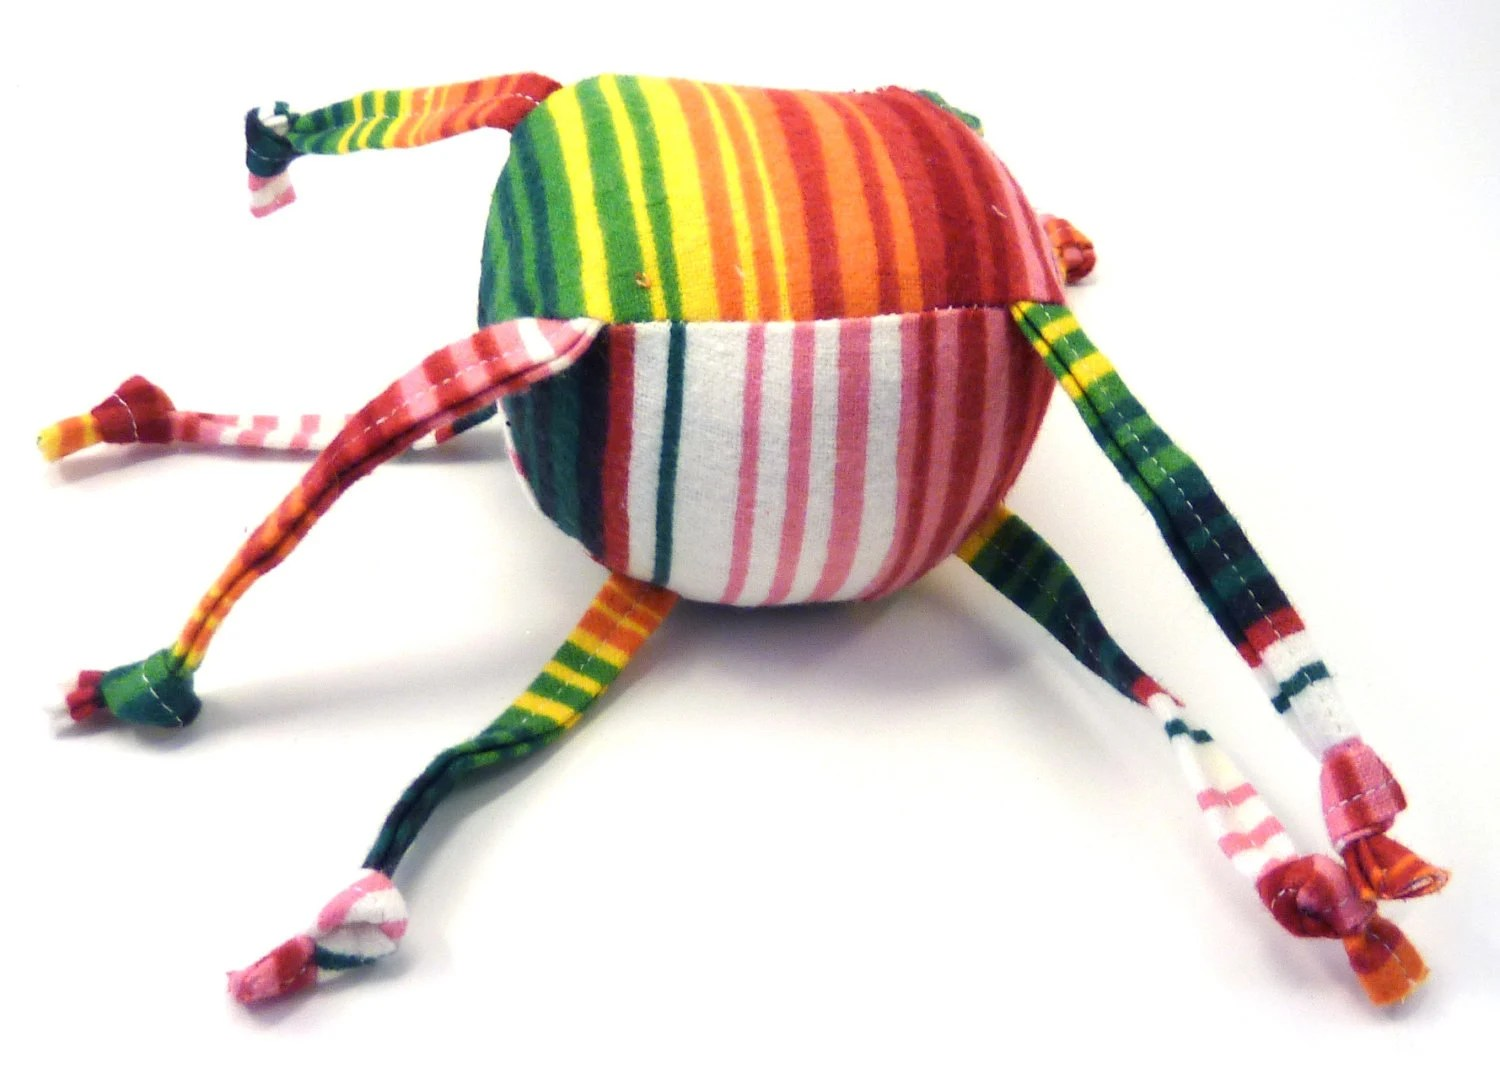 Soft Baby Toy - ZadyMini - Stripes - Red Green White Yellow Orange - Zadyball